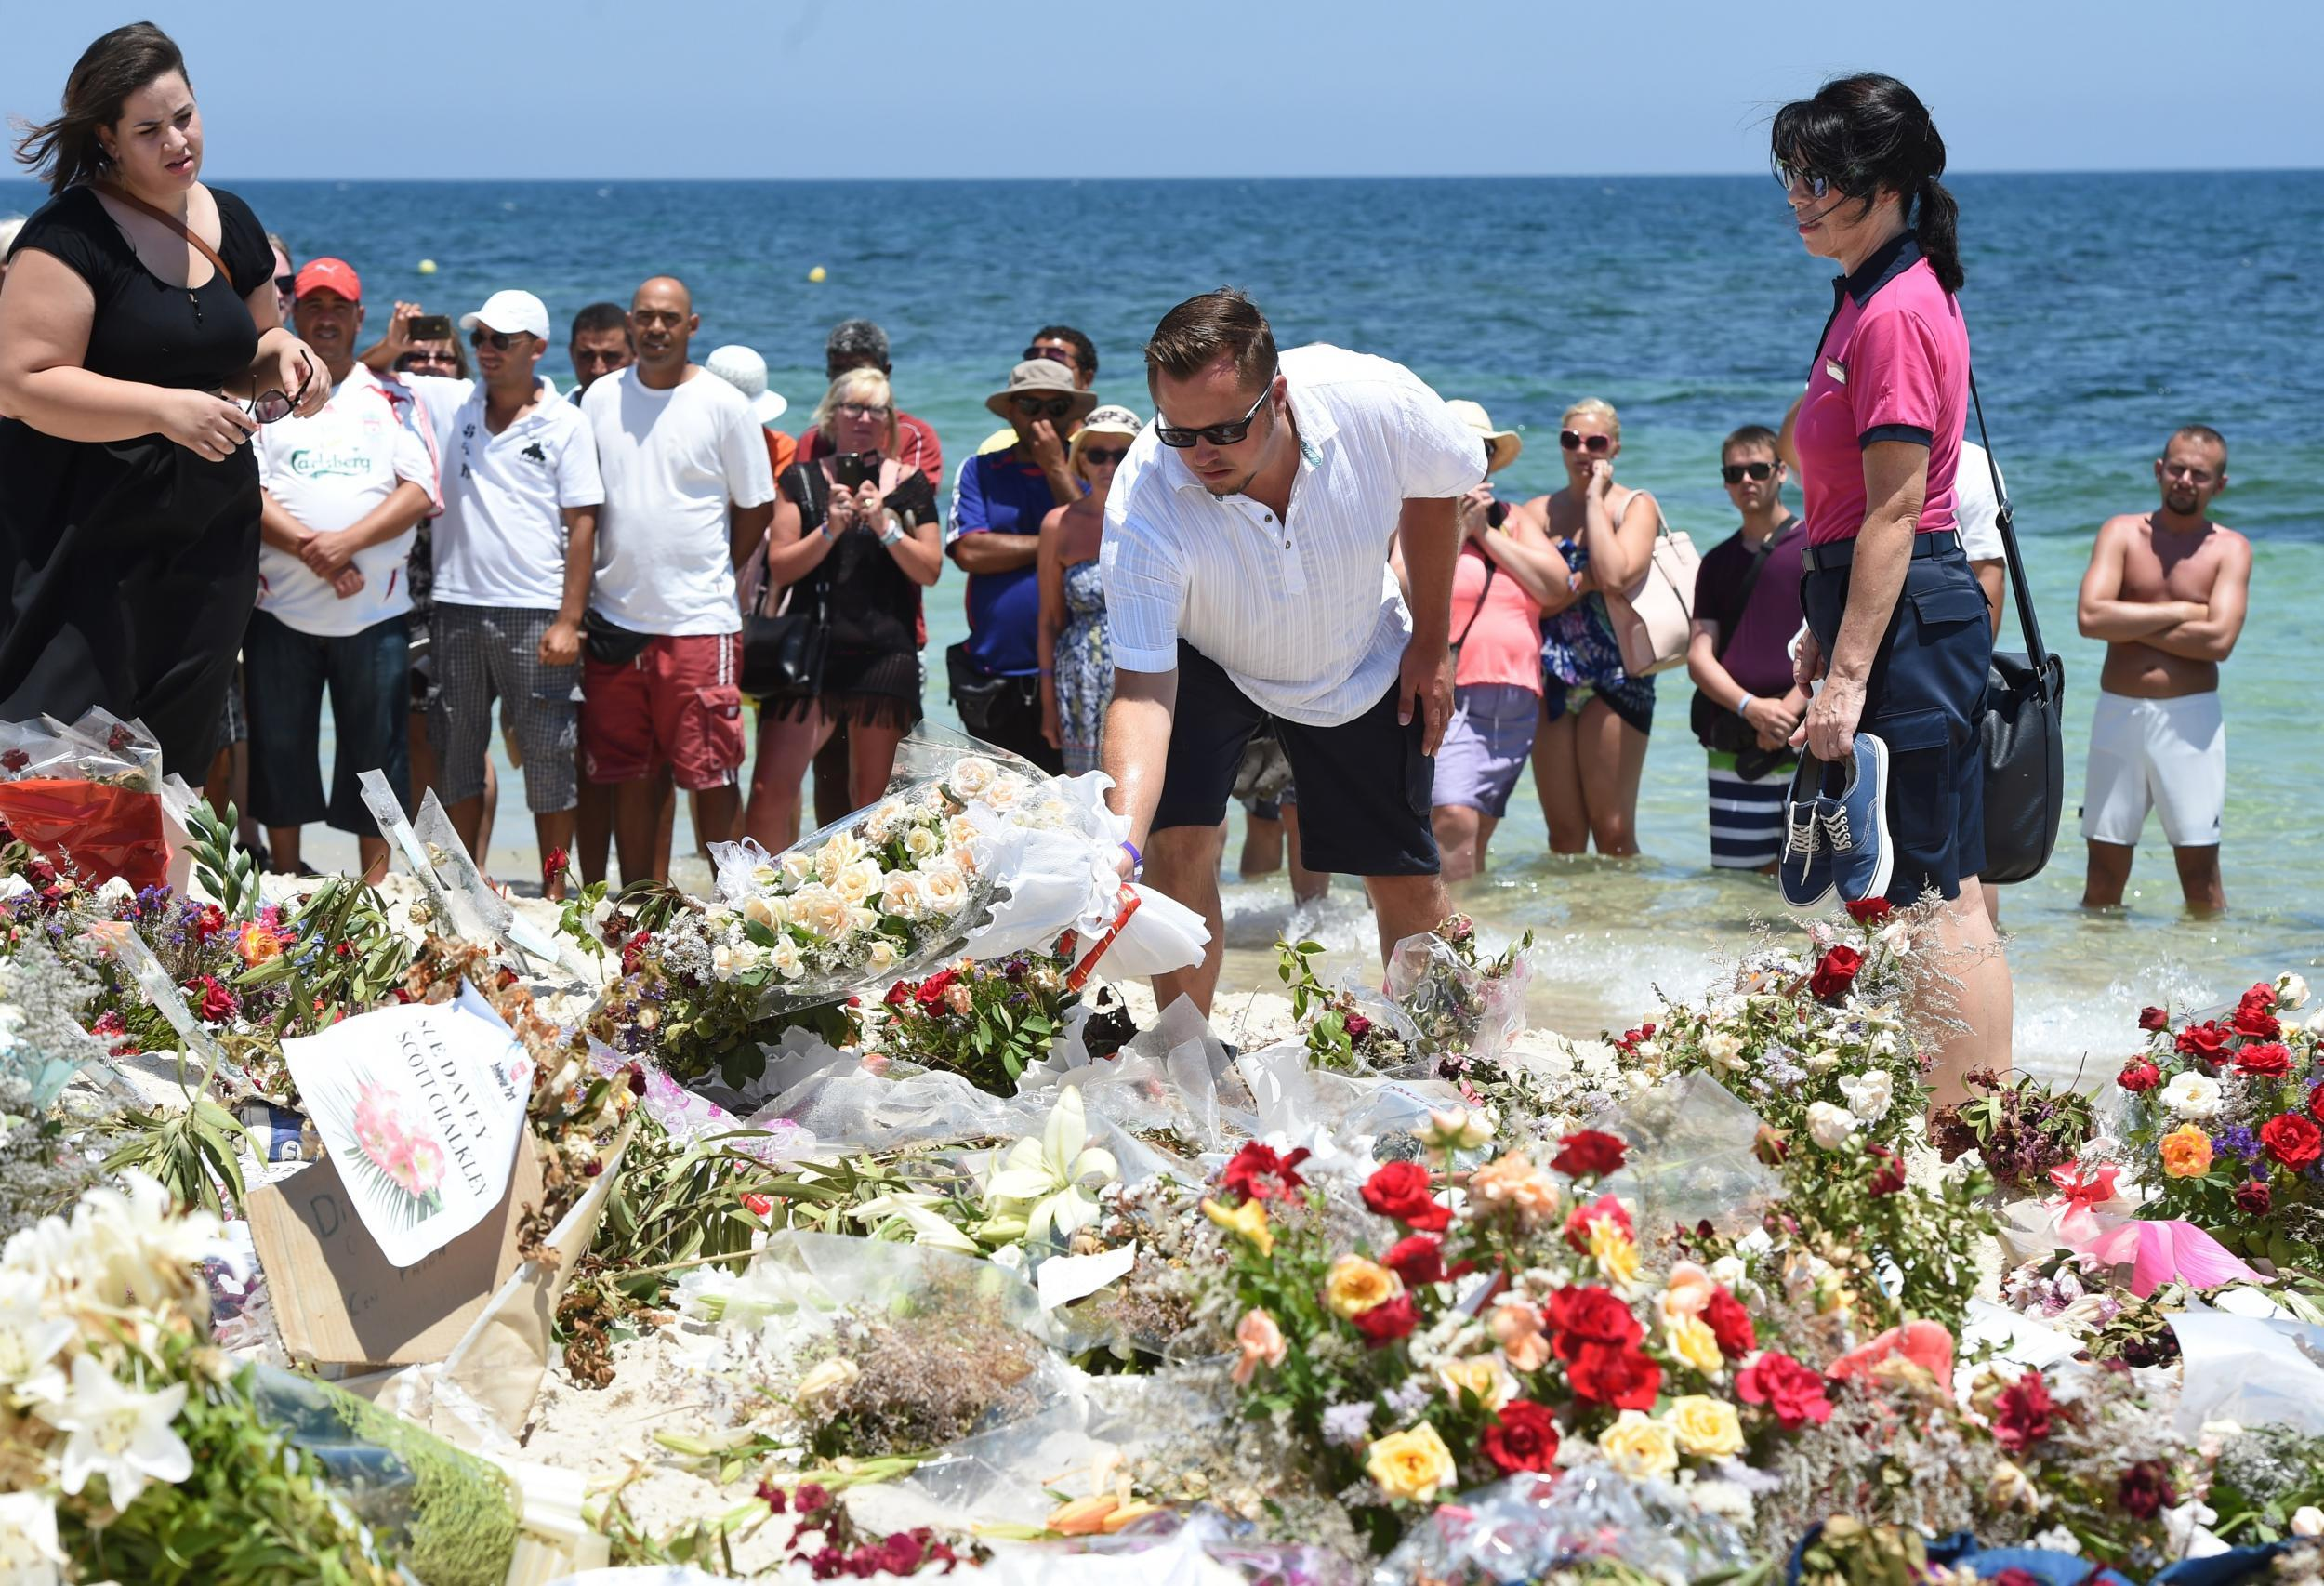 Tunisia attack: Time for the travel industry to remind us of the risks as well as the wonders of the world